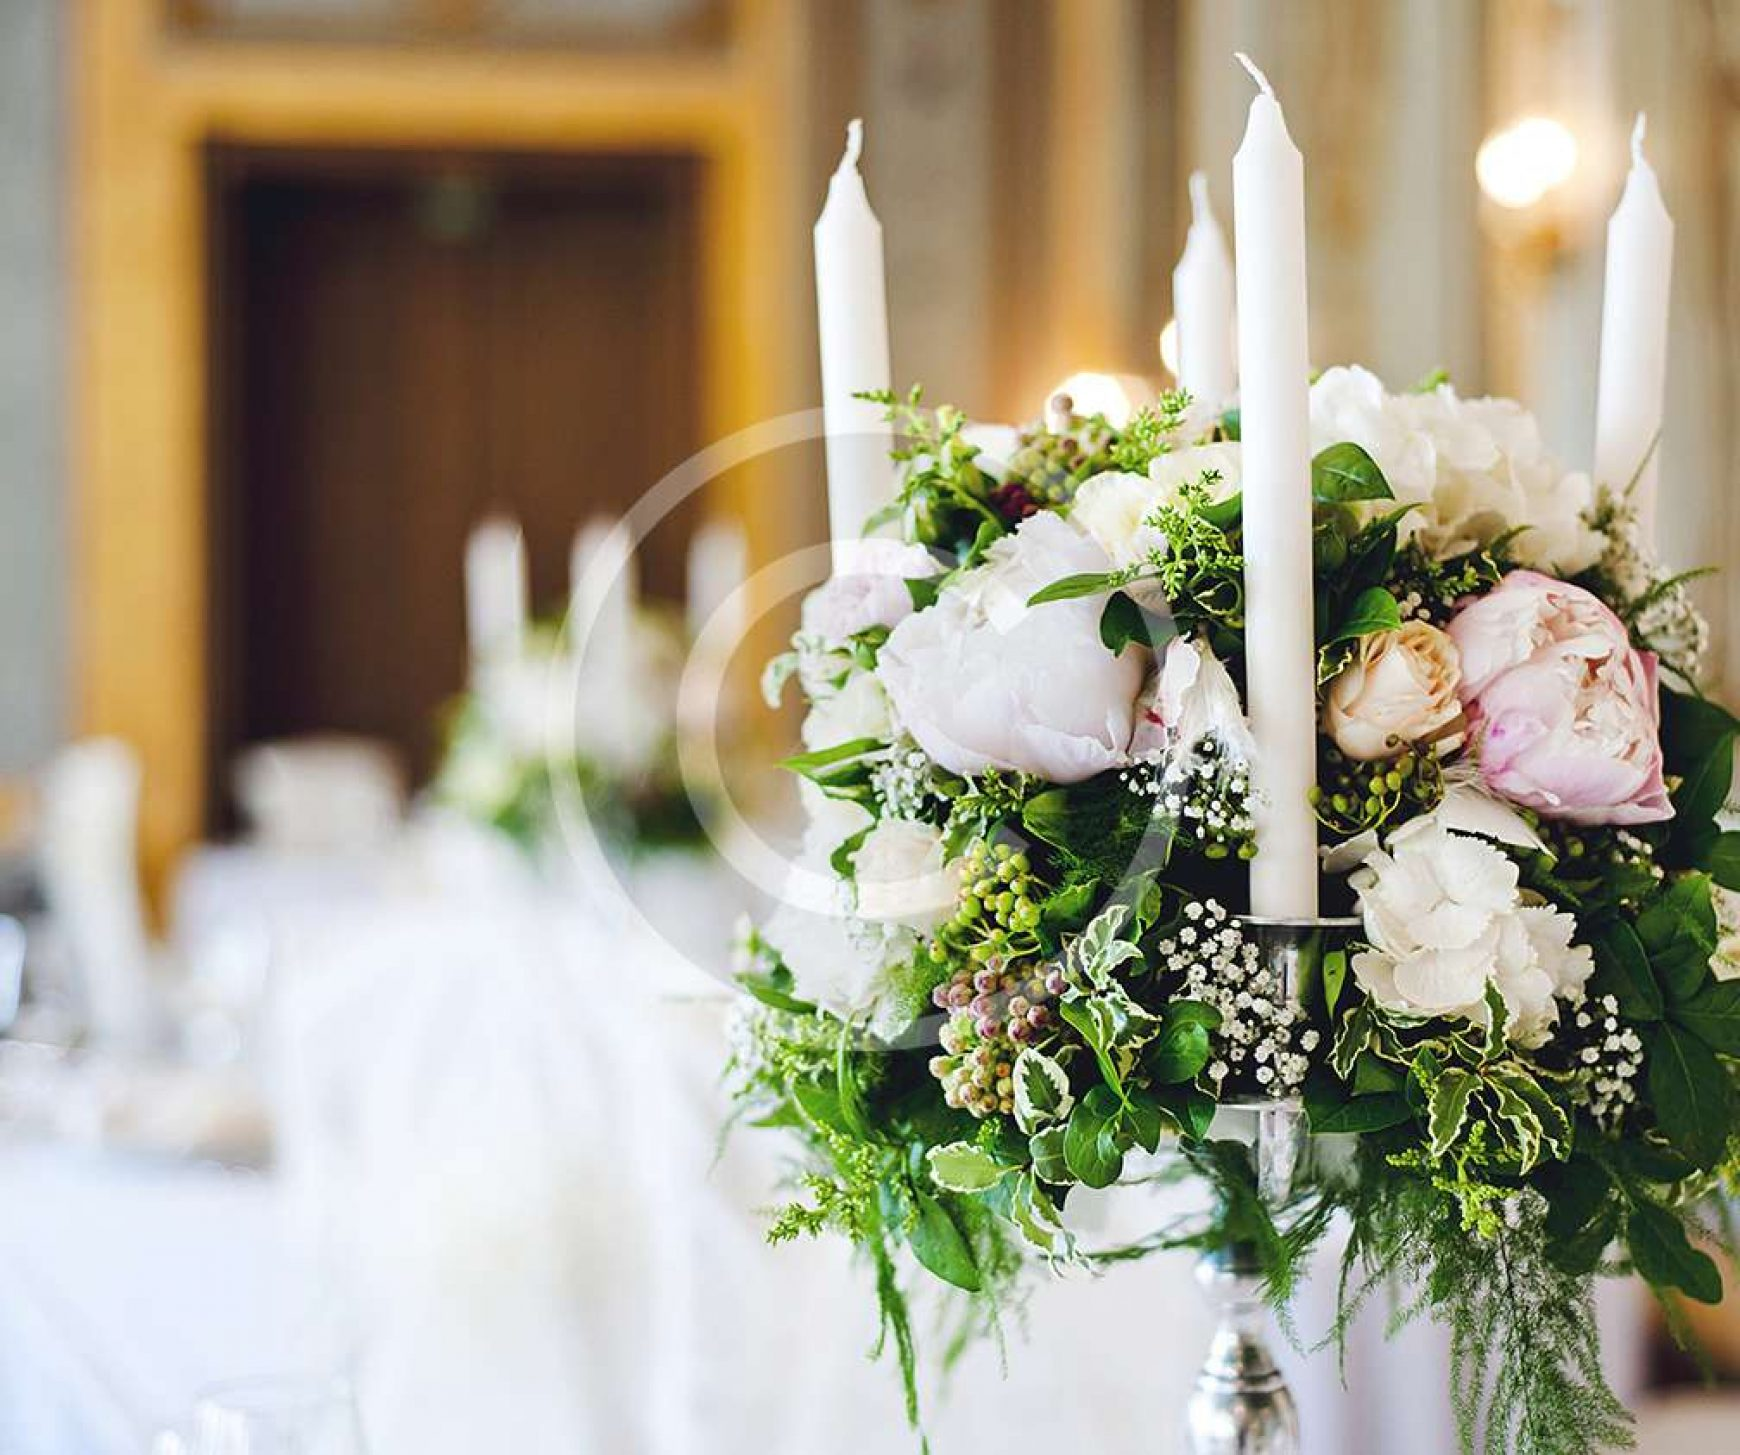 Starting an Event Planning Service